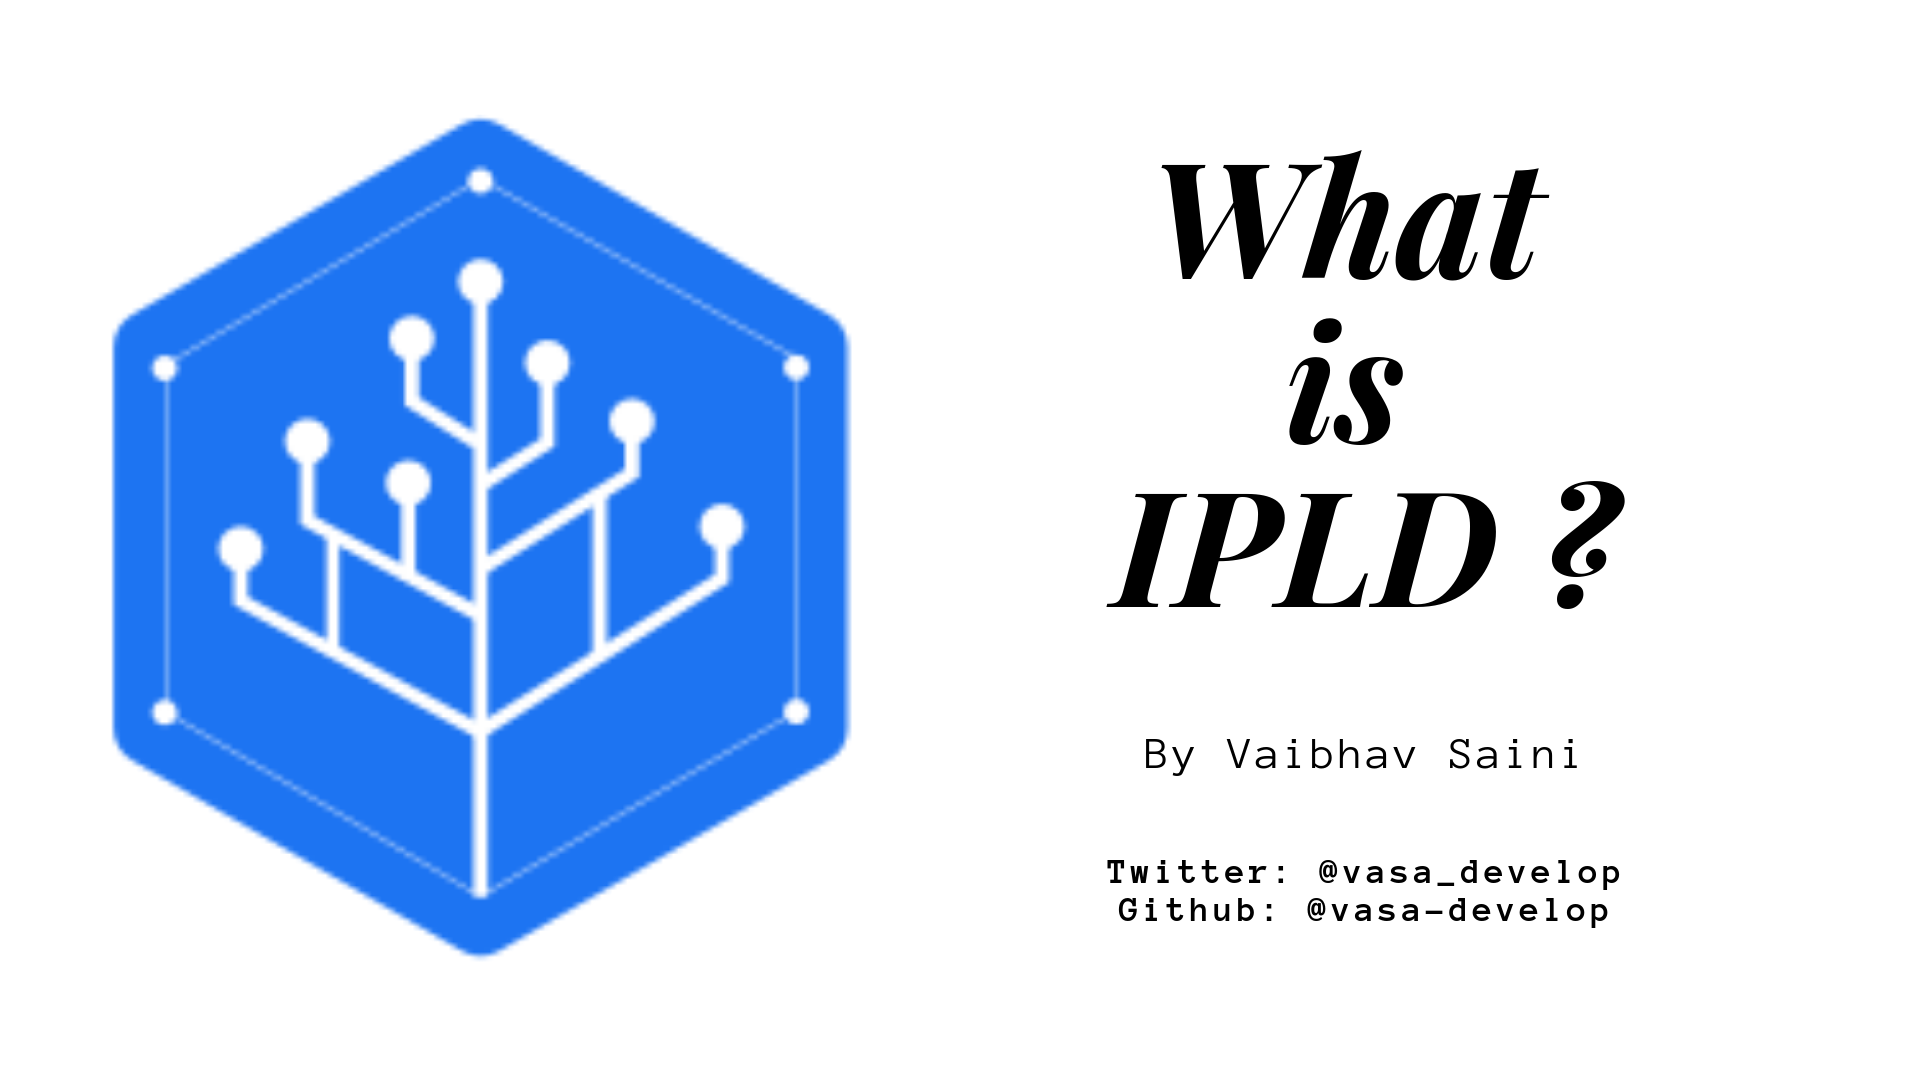 IPLD: Complete Guide